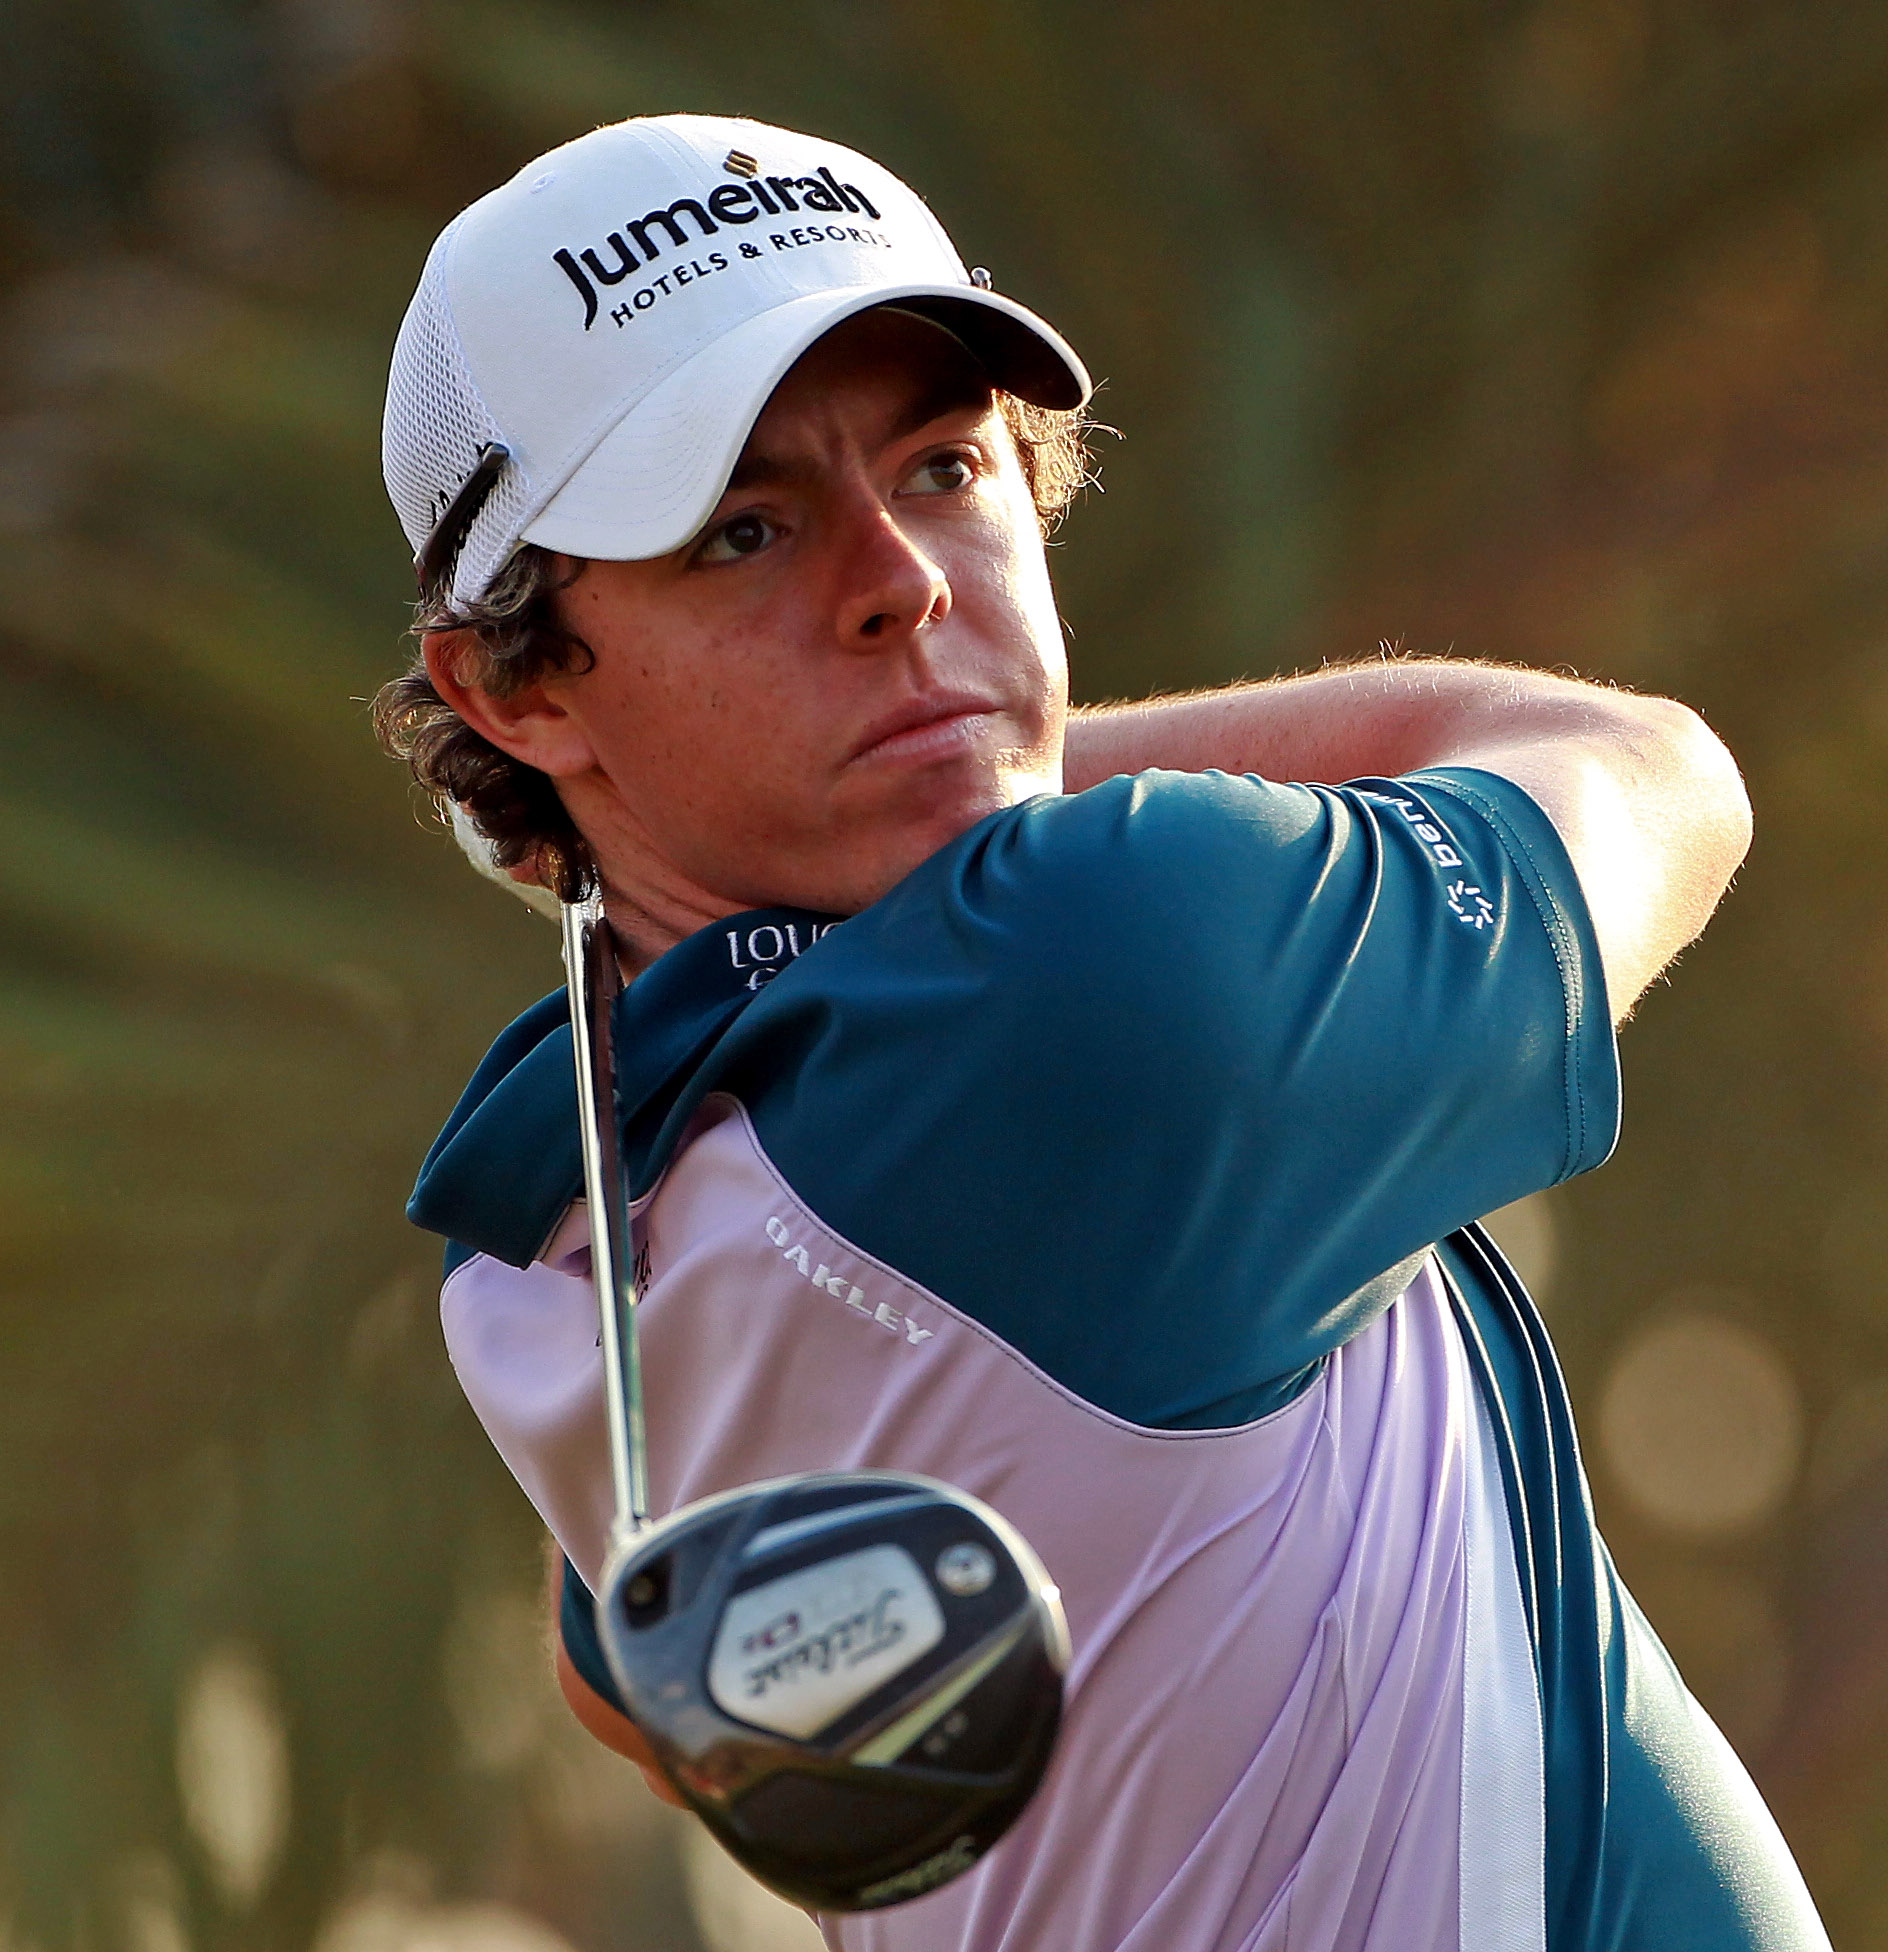 ABU DHABI, UNITED ARAB EMIRATES - JANUARY 23:  Rory McIlroy of Northern Ireland in action during the final round of The Abu Dhabi HSBC Golf Championship at Abu Dhabi Golf Club on January 23, 2011 in Abu Dhabi, United Arab Emirates.  (Photo by Andrew Redin